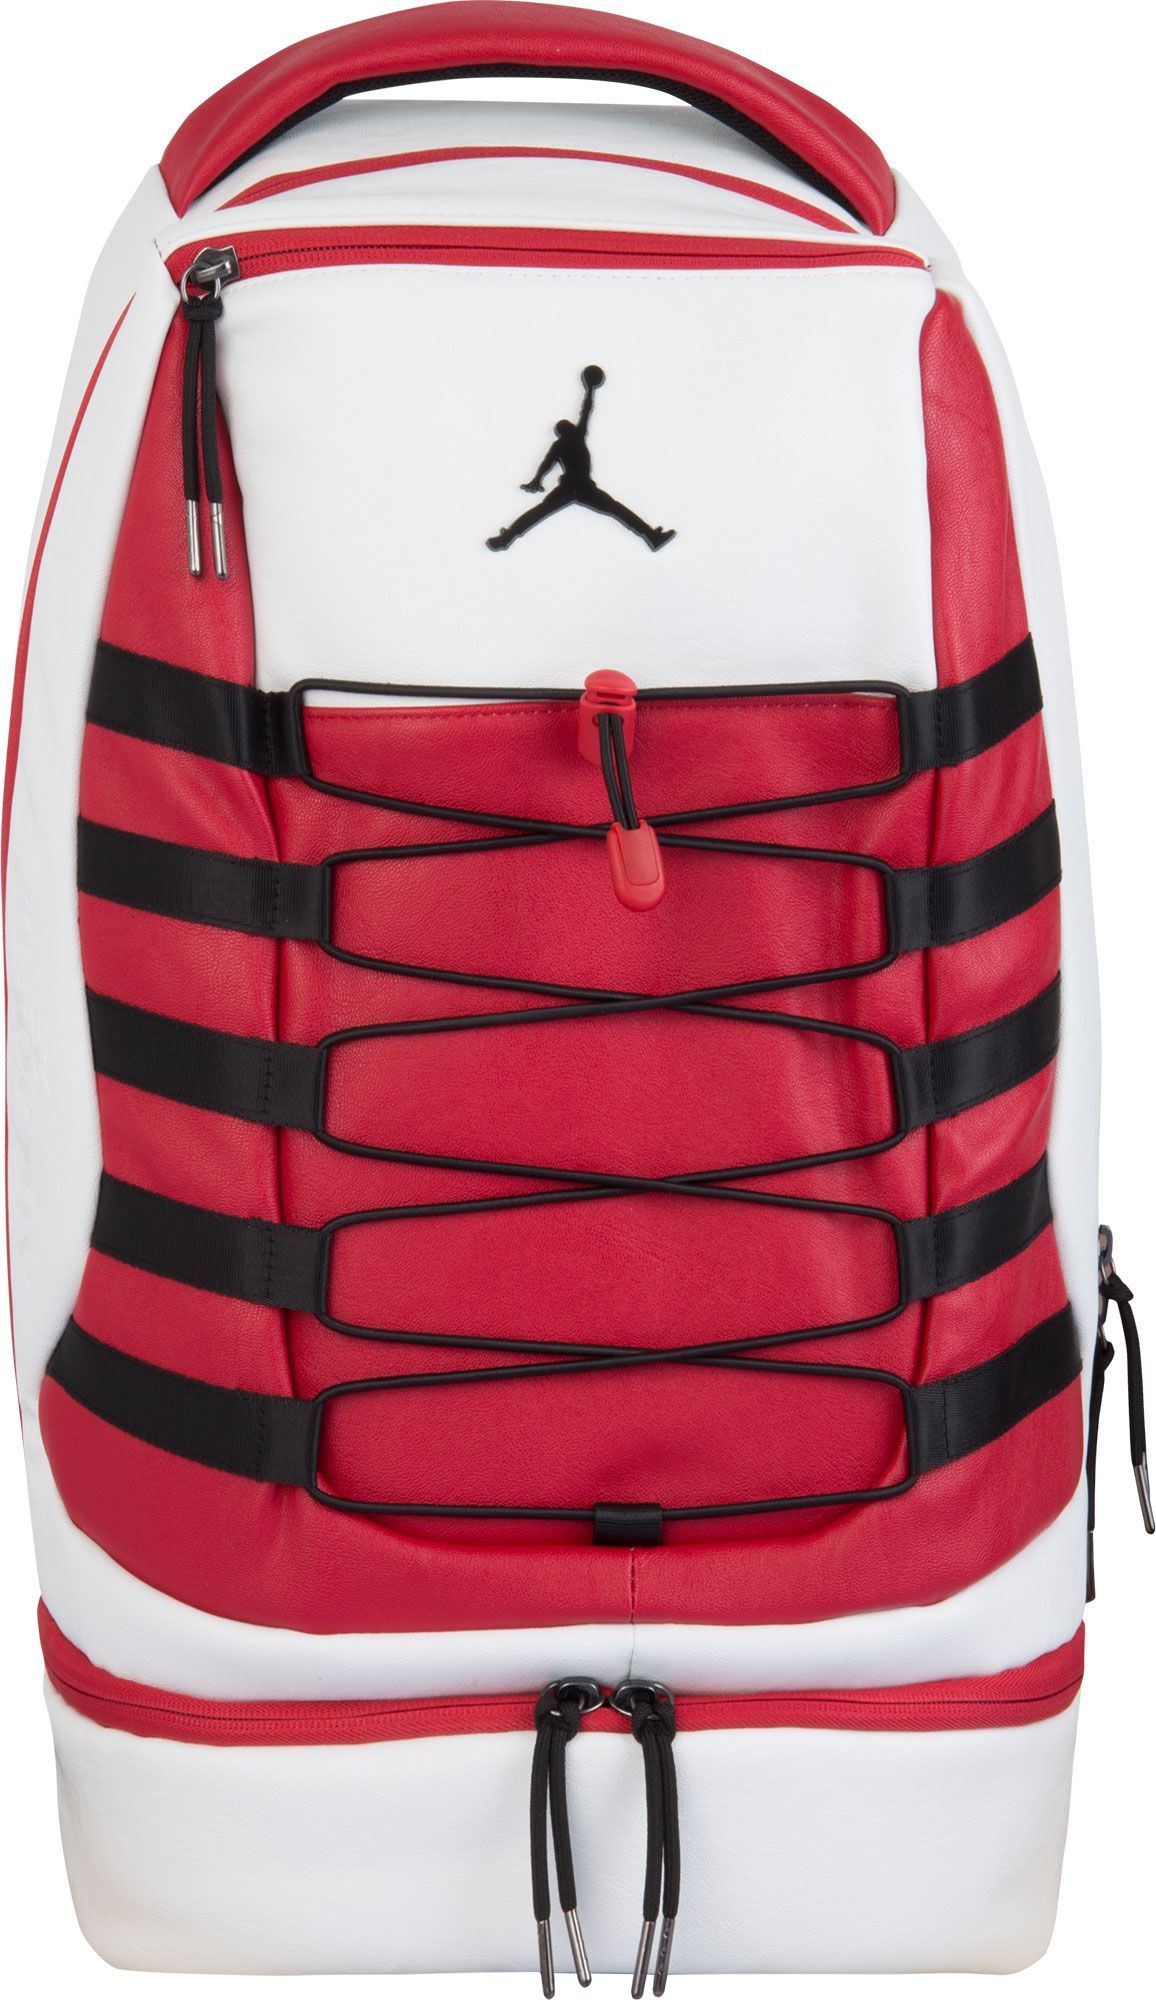 266263aa5ac Jordan Retro 10 Backpack in 2019 | Products | Jordan retro 10 ...